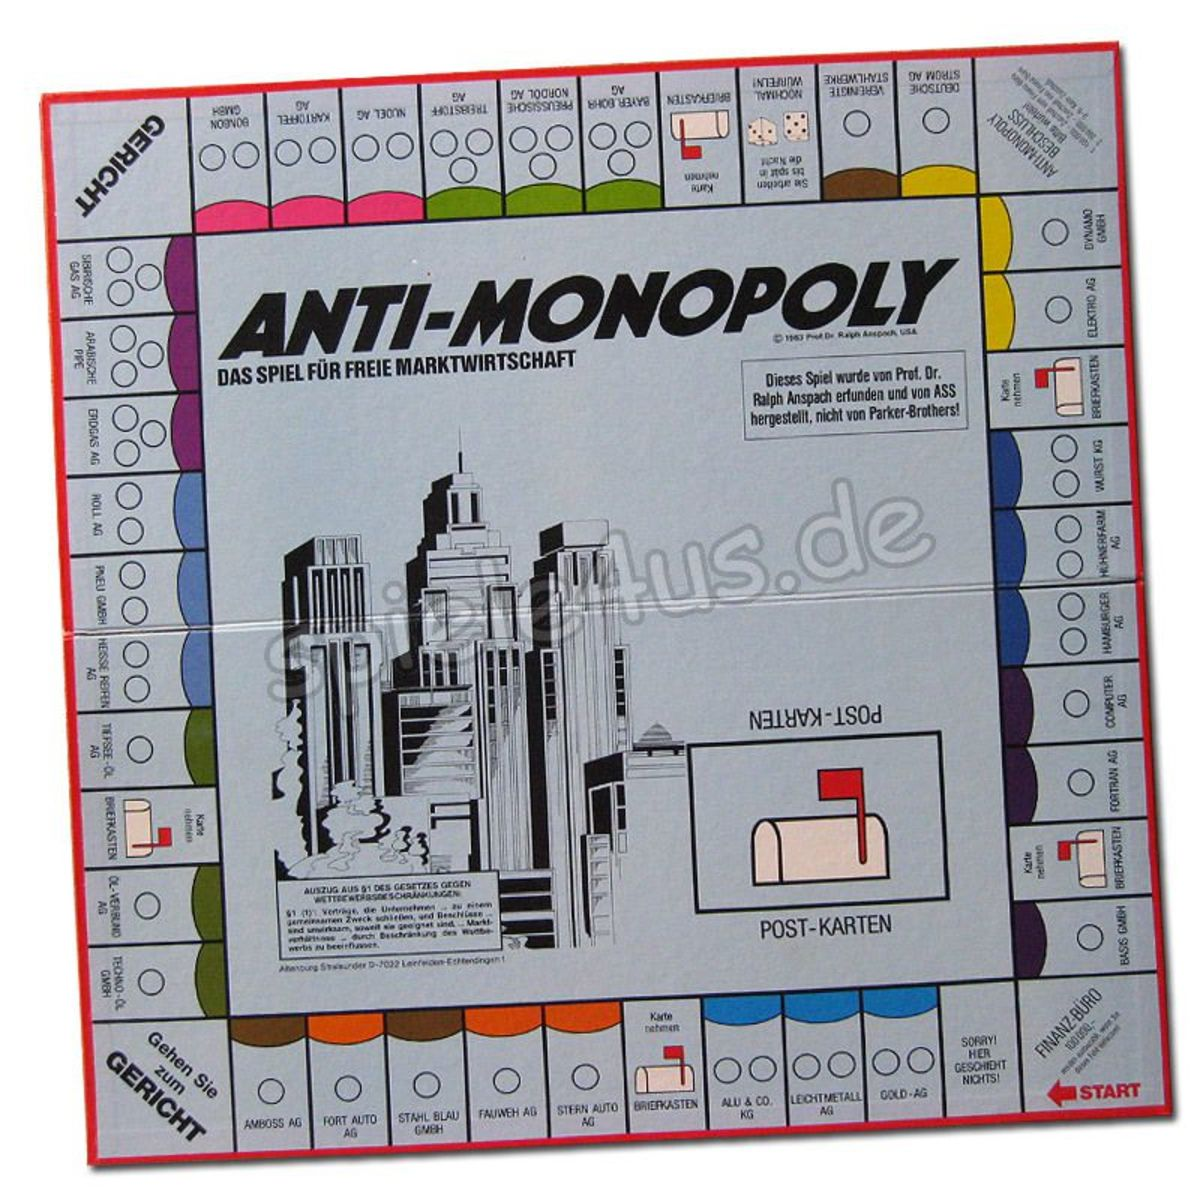 Anti-Monopoly was a popular Christmas gift in 1973.